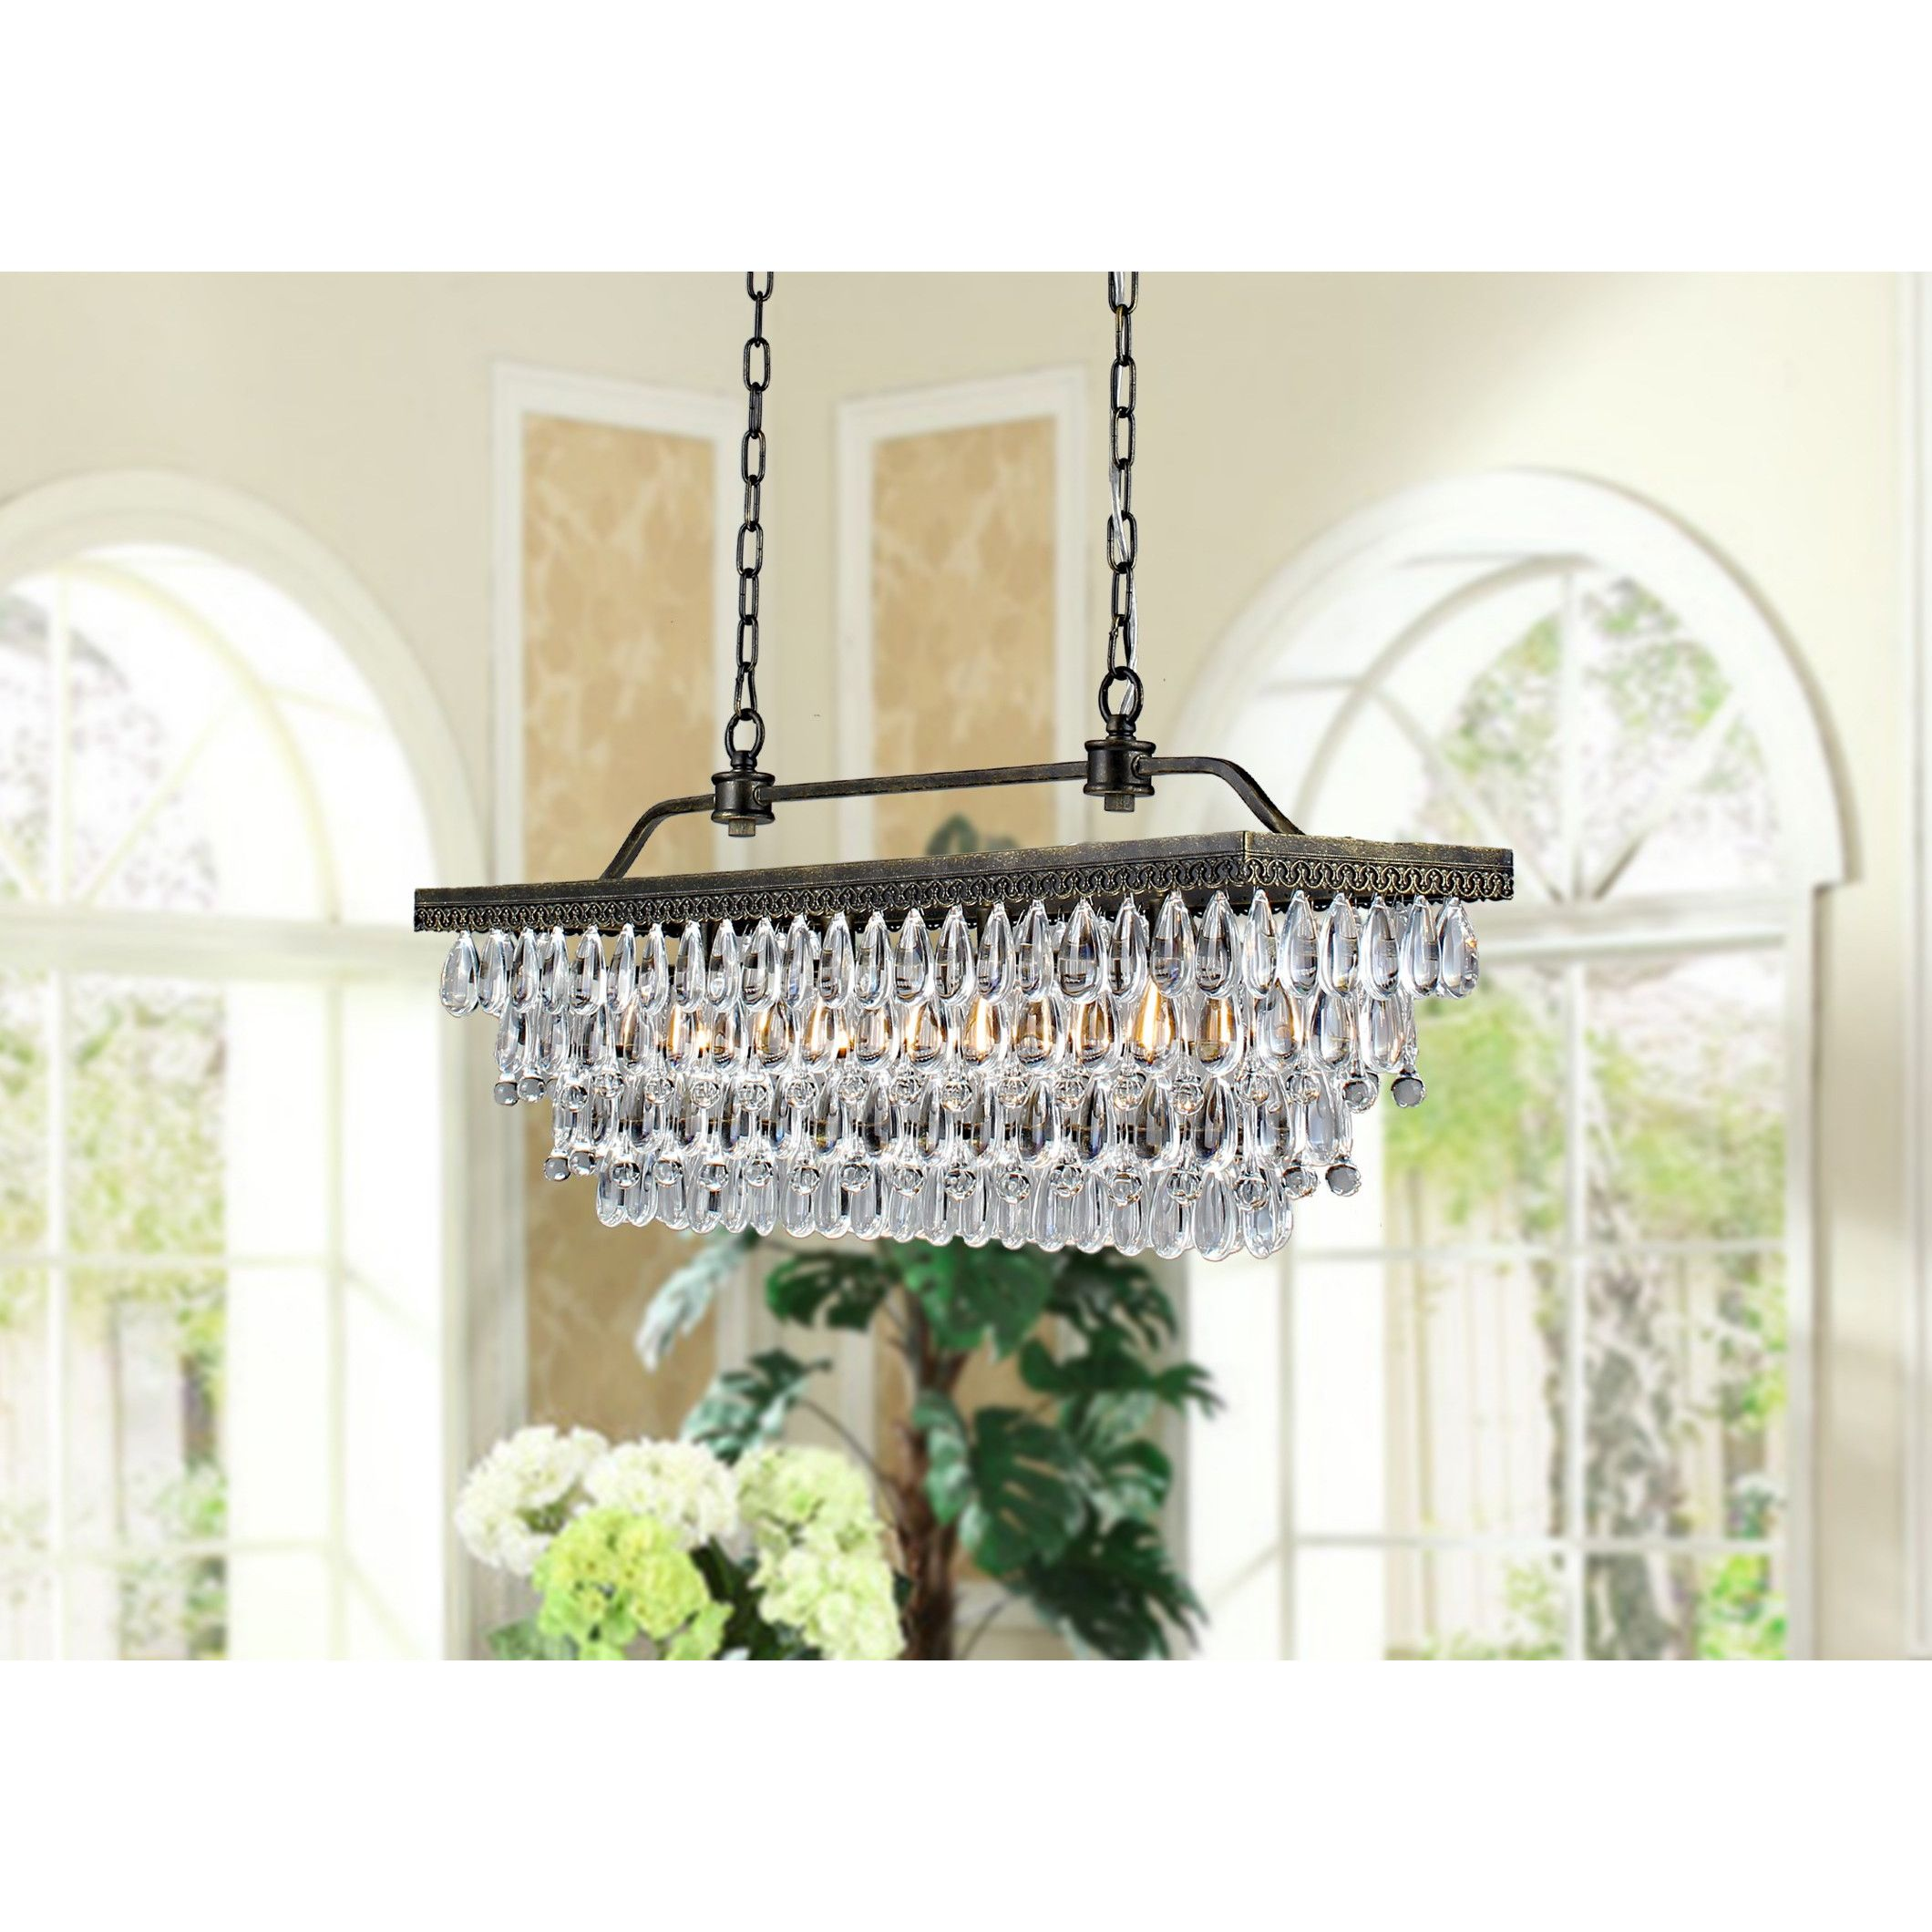 Wellyer Hemera 4 Light Crystal Chandelier & Reviews